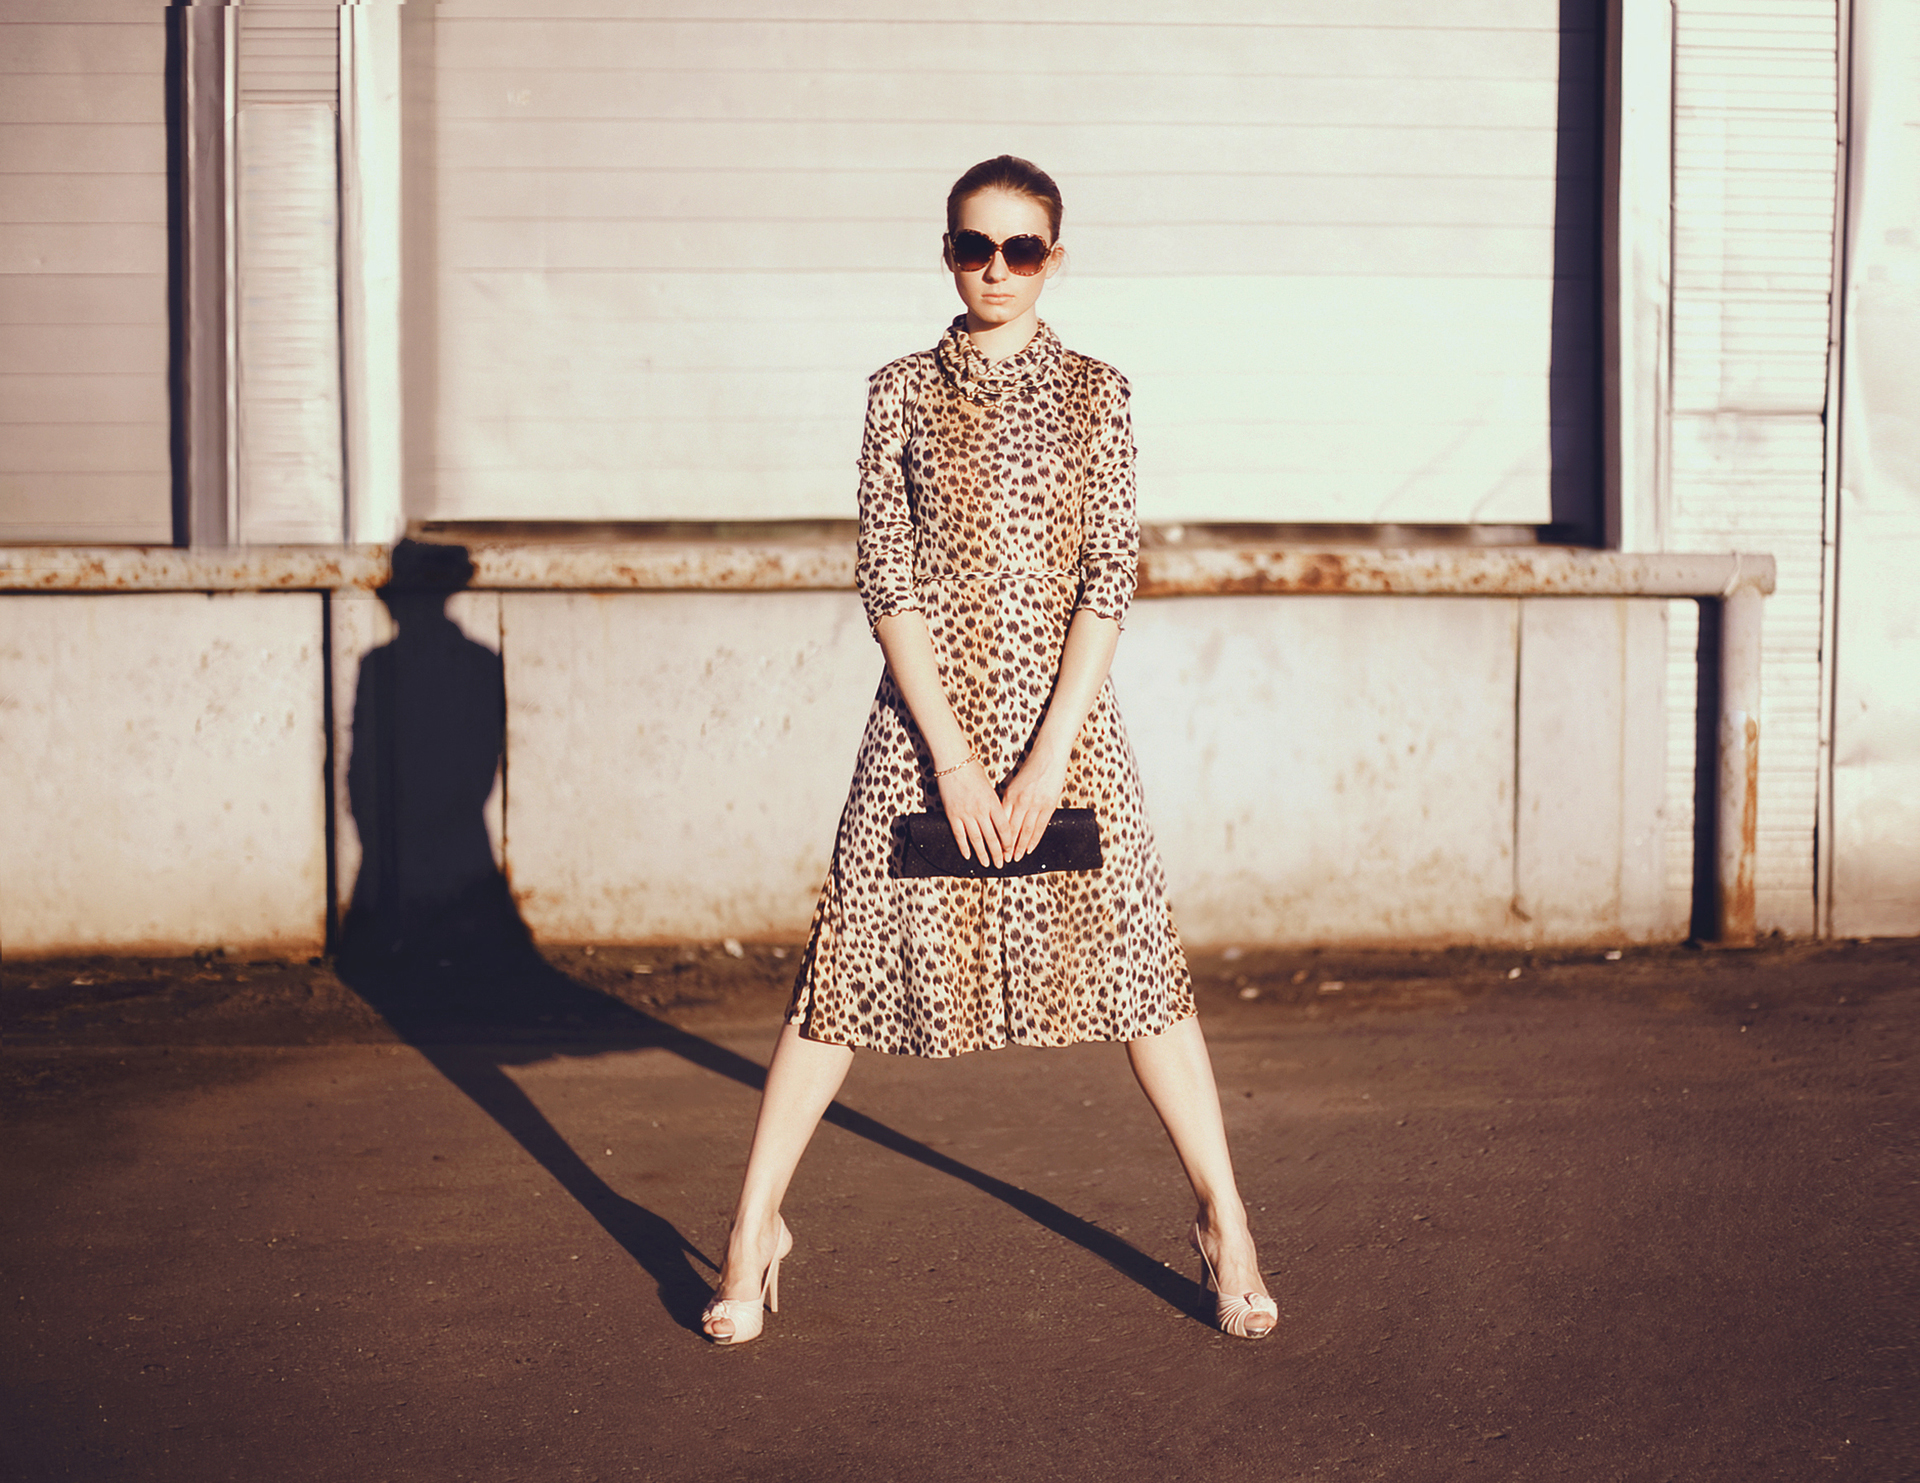 Stylish woman in a leopard dress, glasses and bag in the ghetto evening, street fashion.